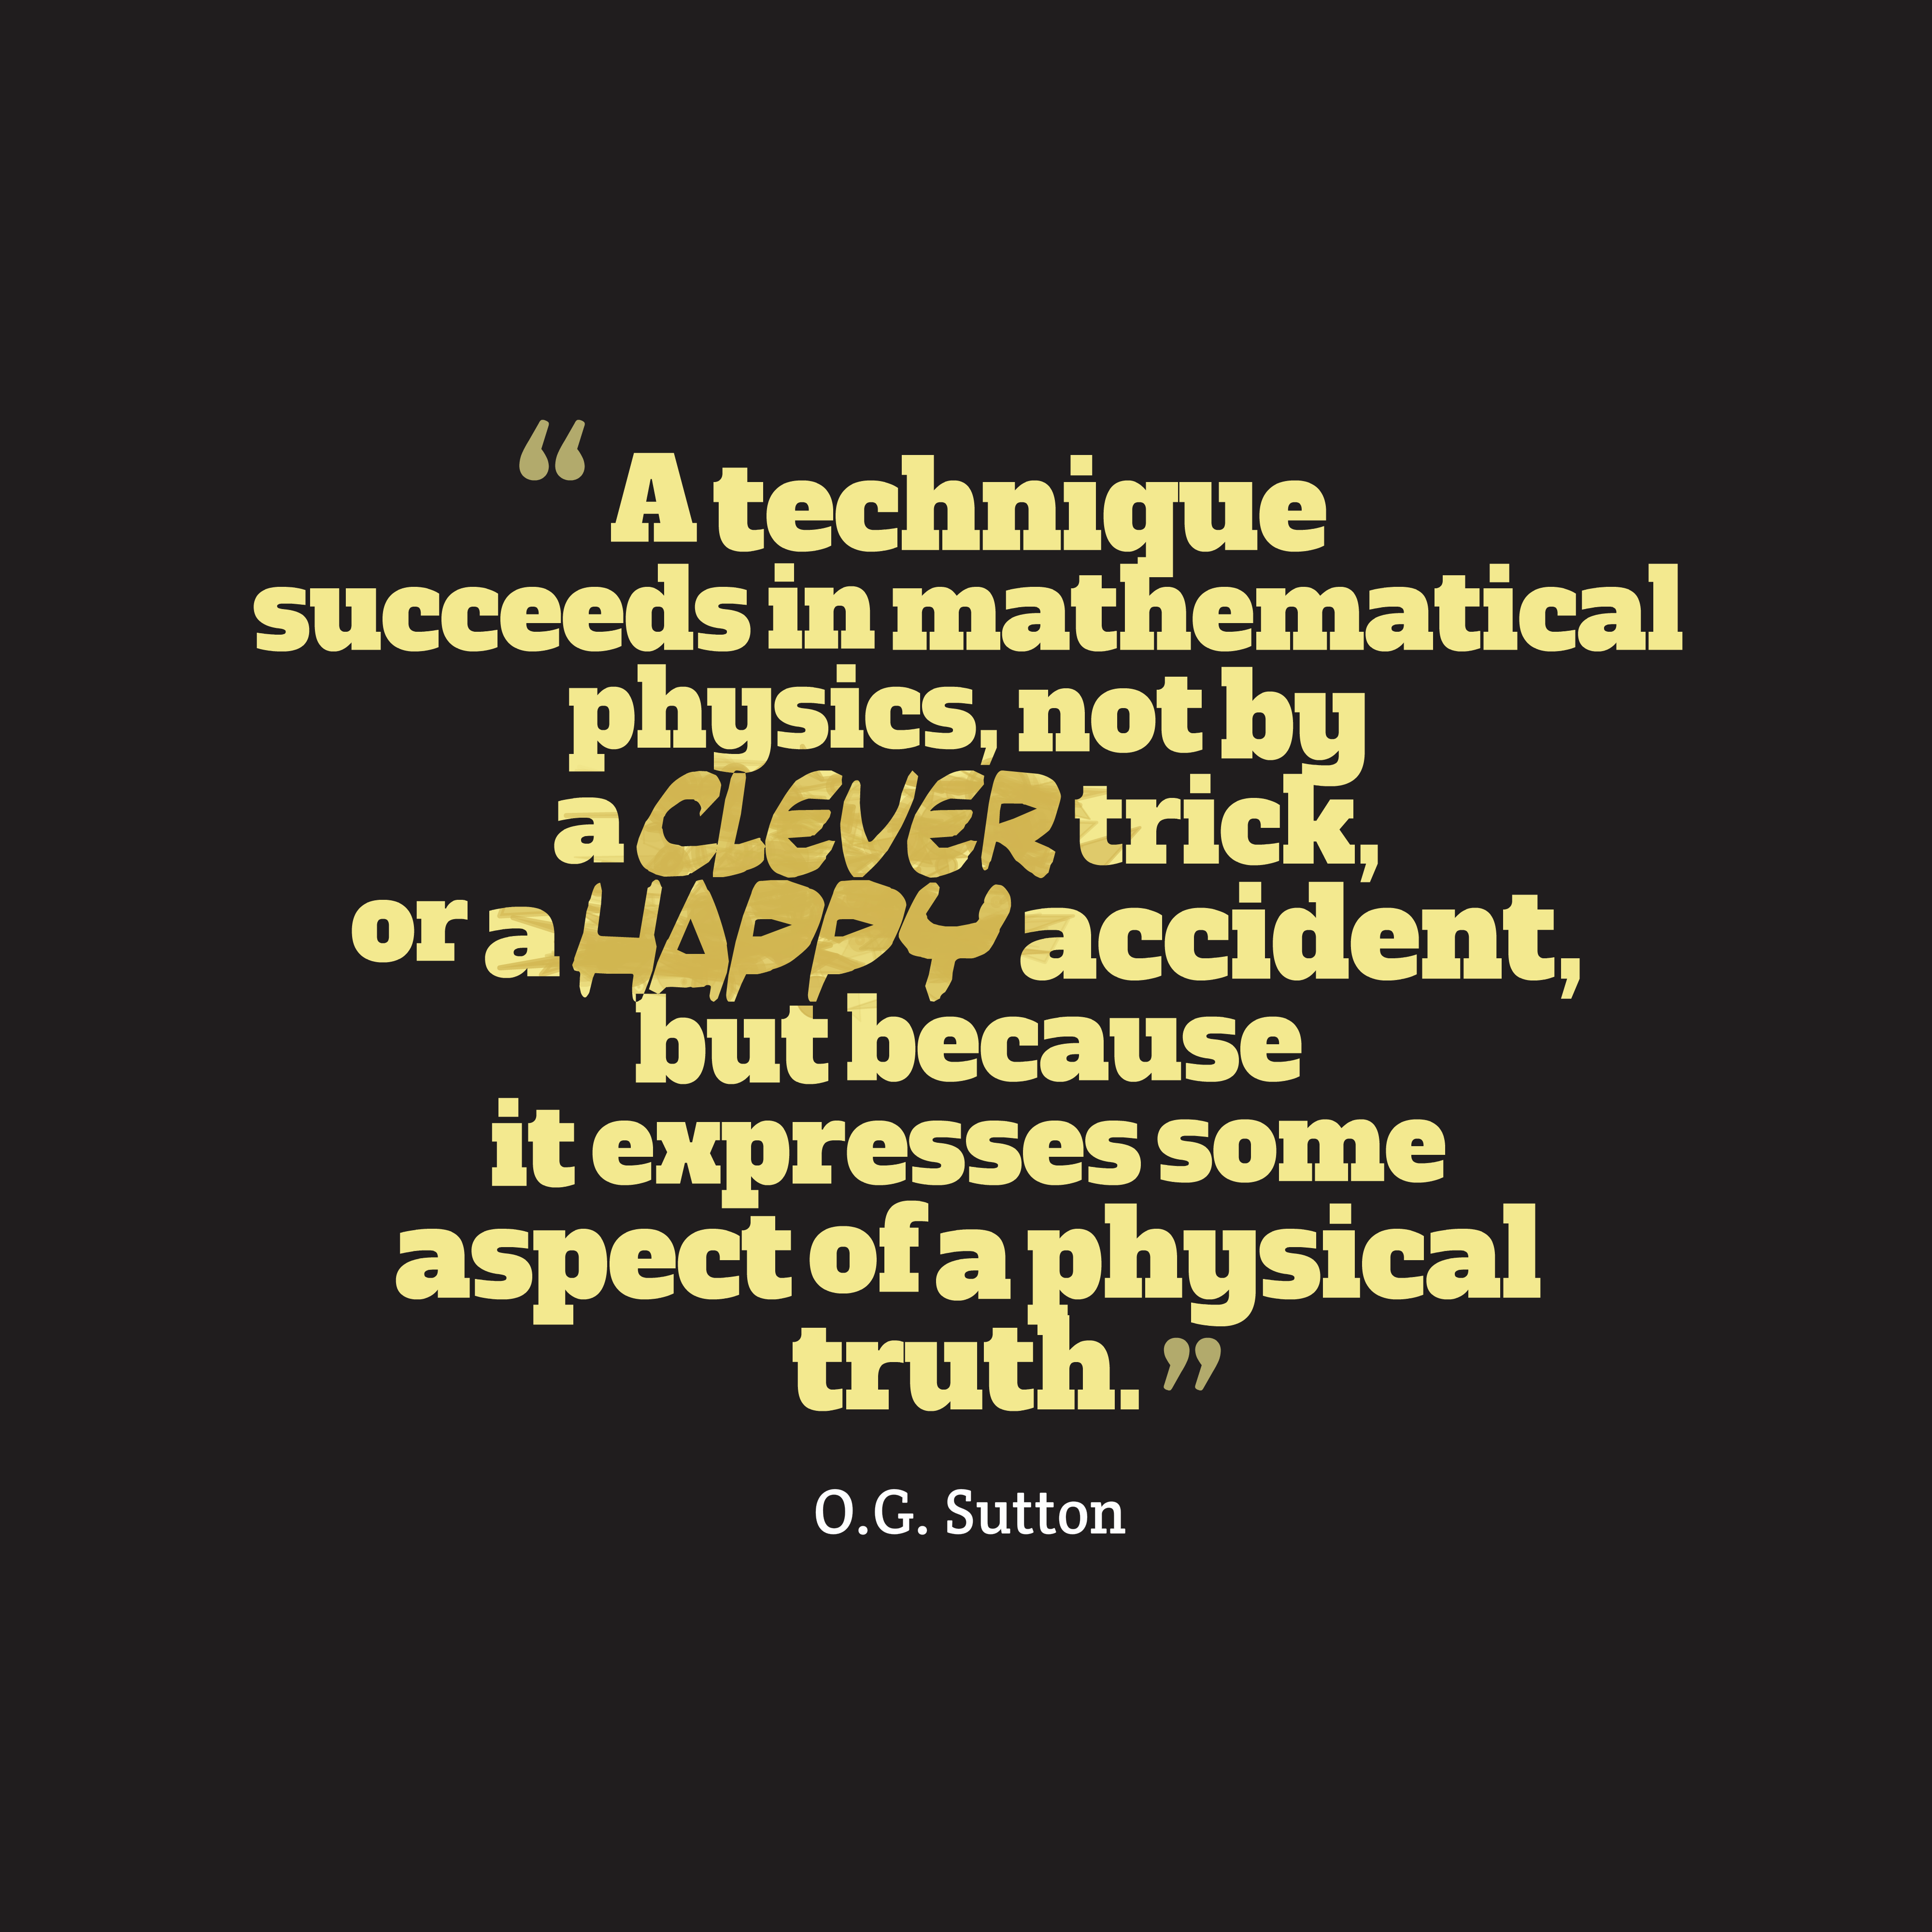 Quotes image of A technique succeeds in mathematical physics, not by a clever trick, or a happy accident, but because it expresses some aspect of a physical truth.